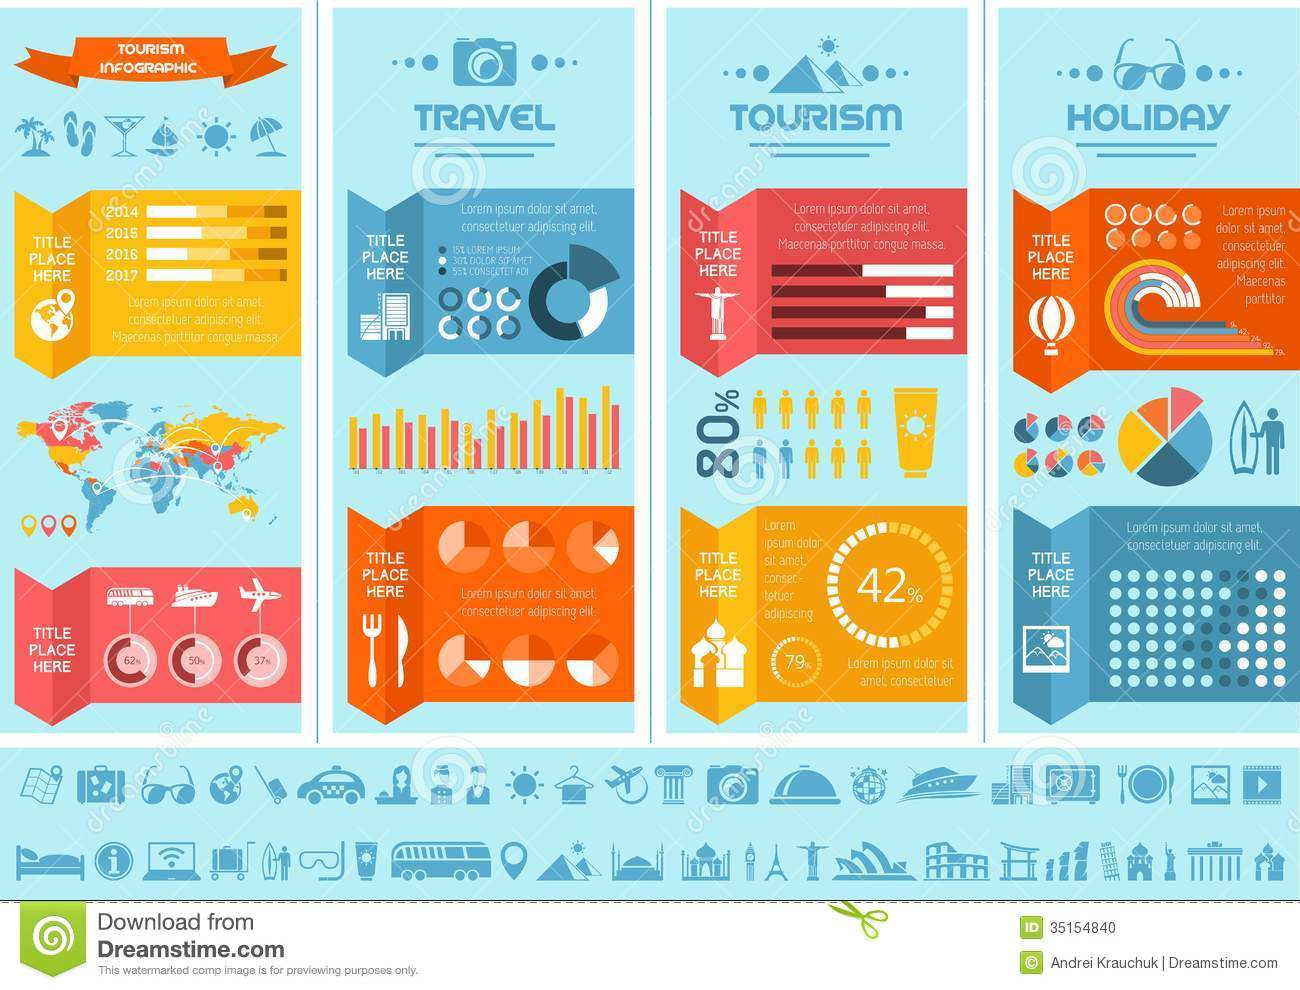 Travel Infographic Template. Stock Photo - Image: 35154840